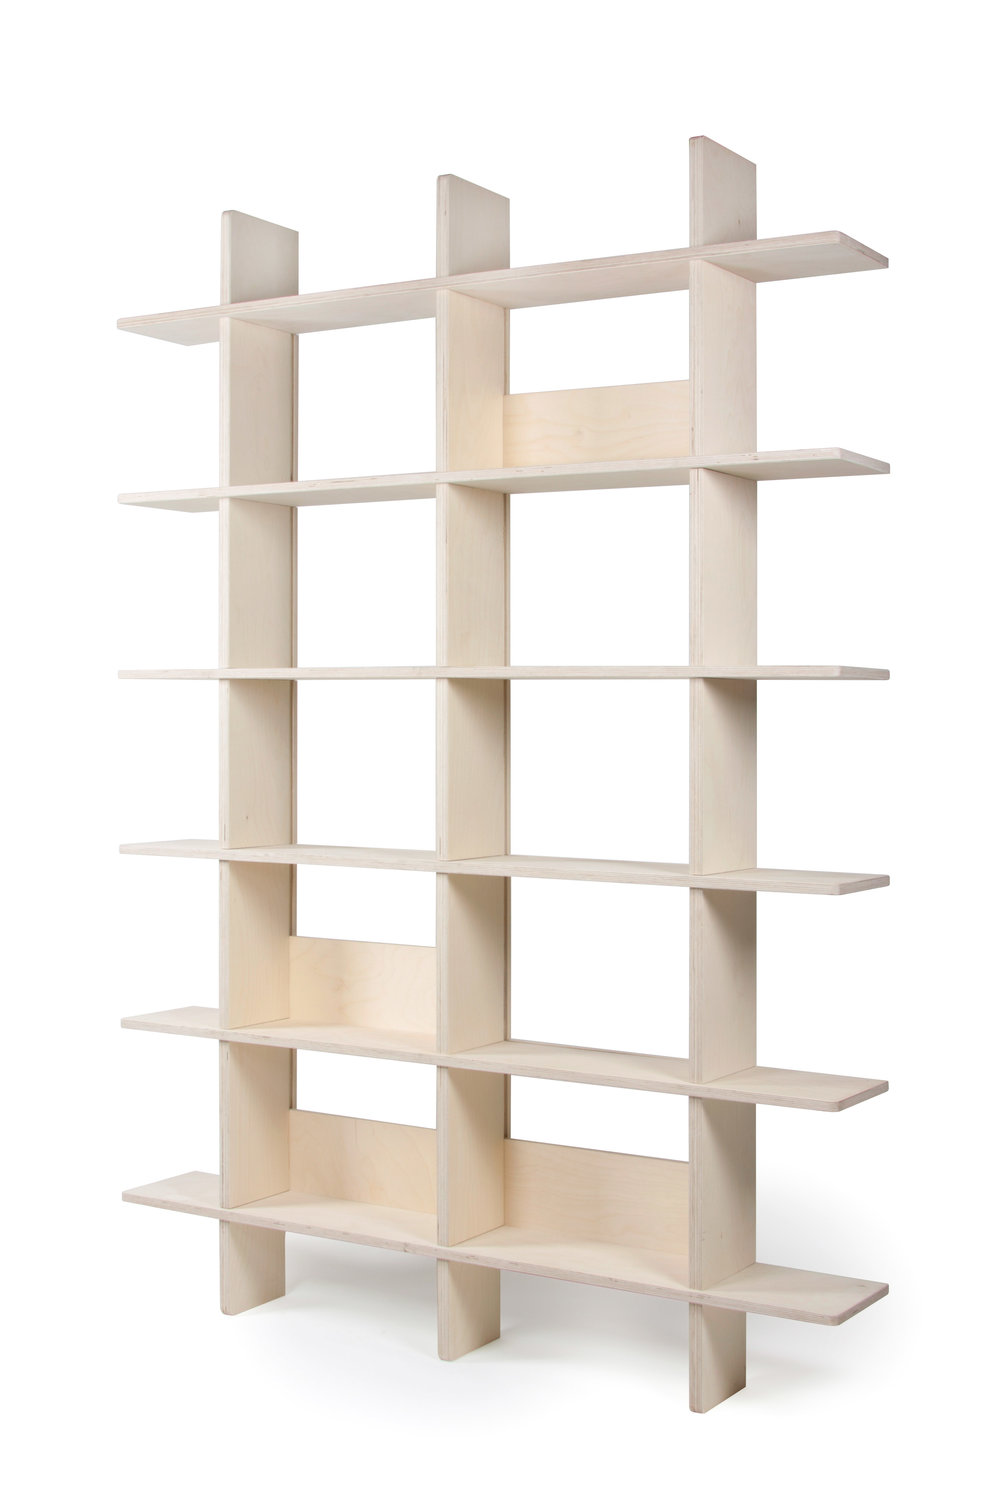 Shelf-Linnea-Modular-56w-6shelf-angle.jpg